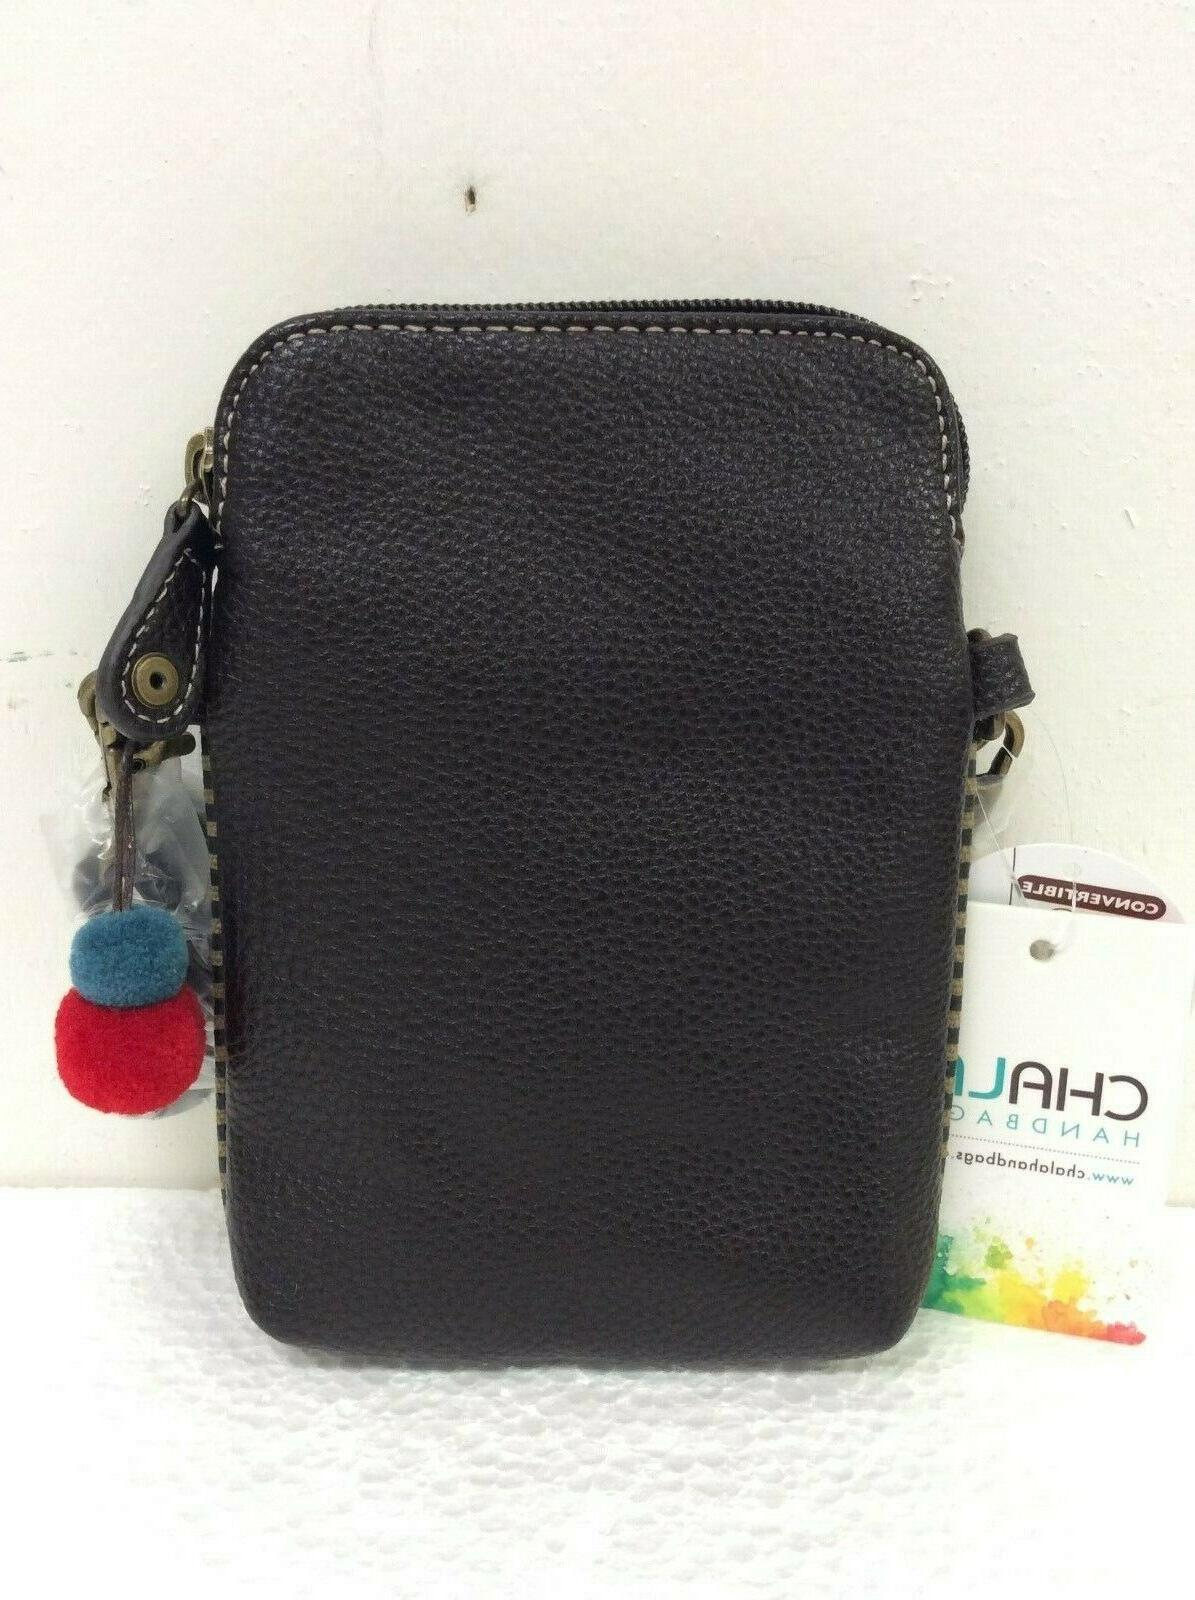 Chala Cell Phone Small Purse